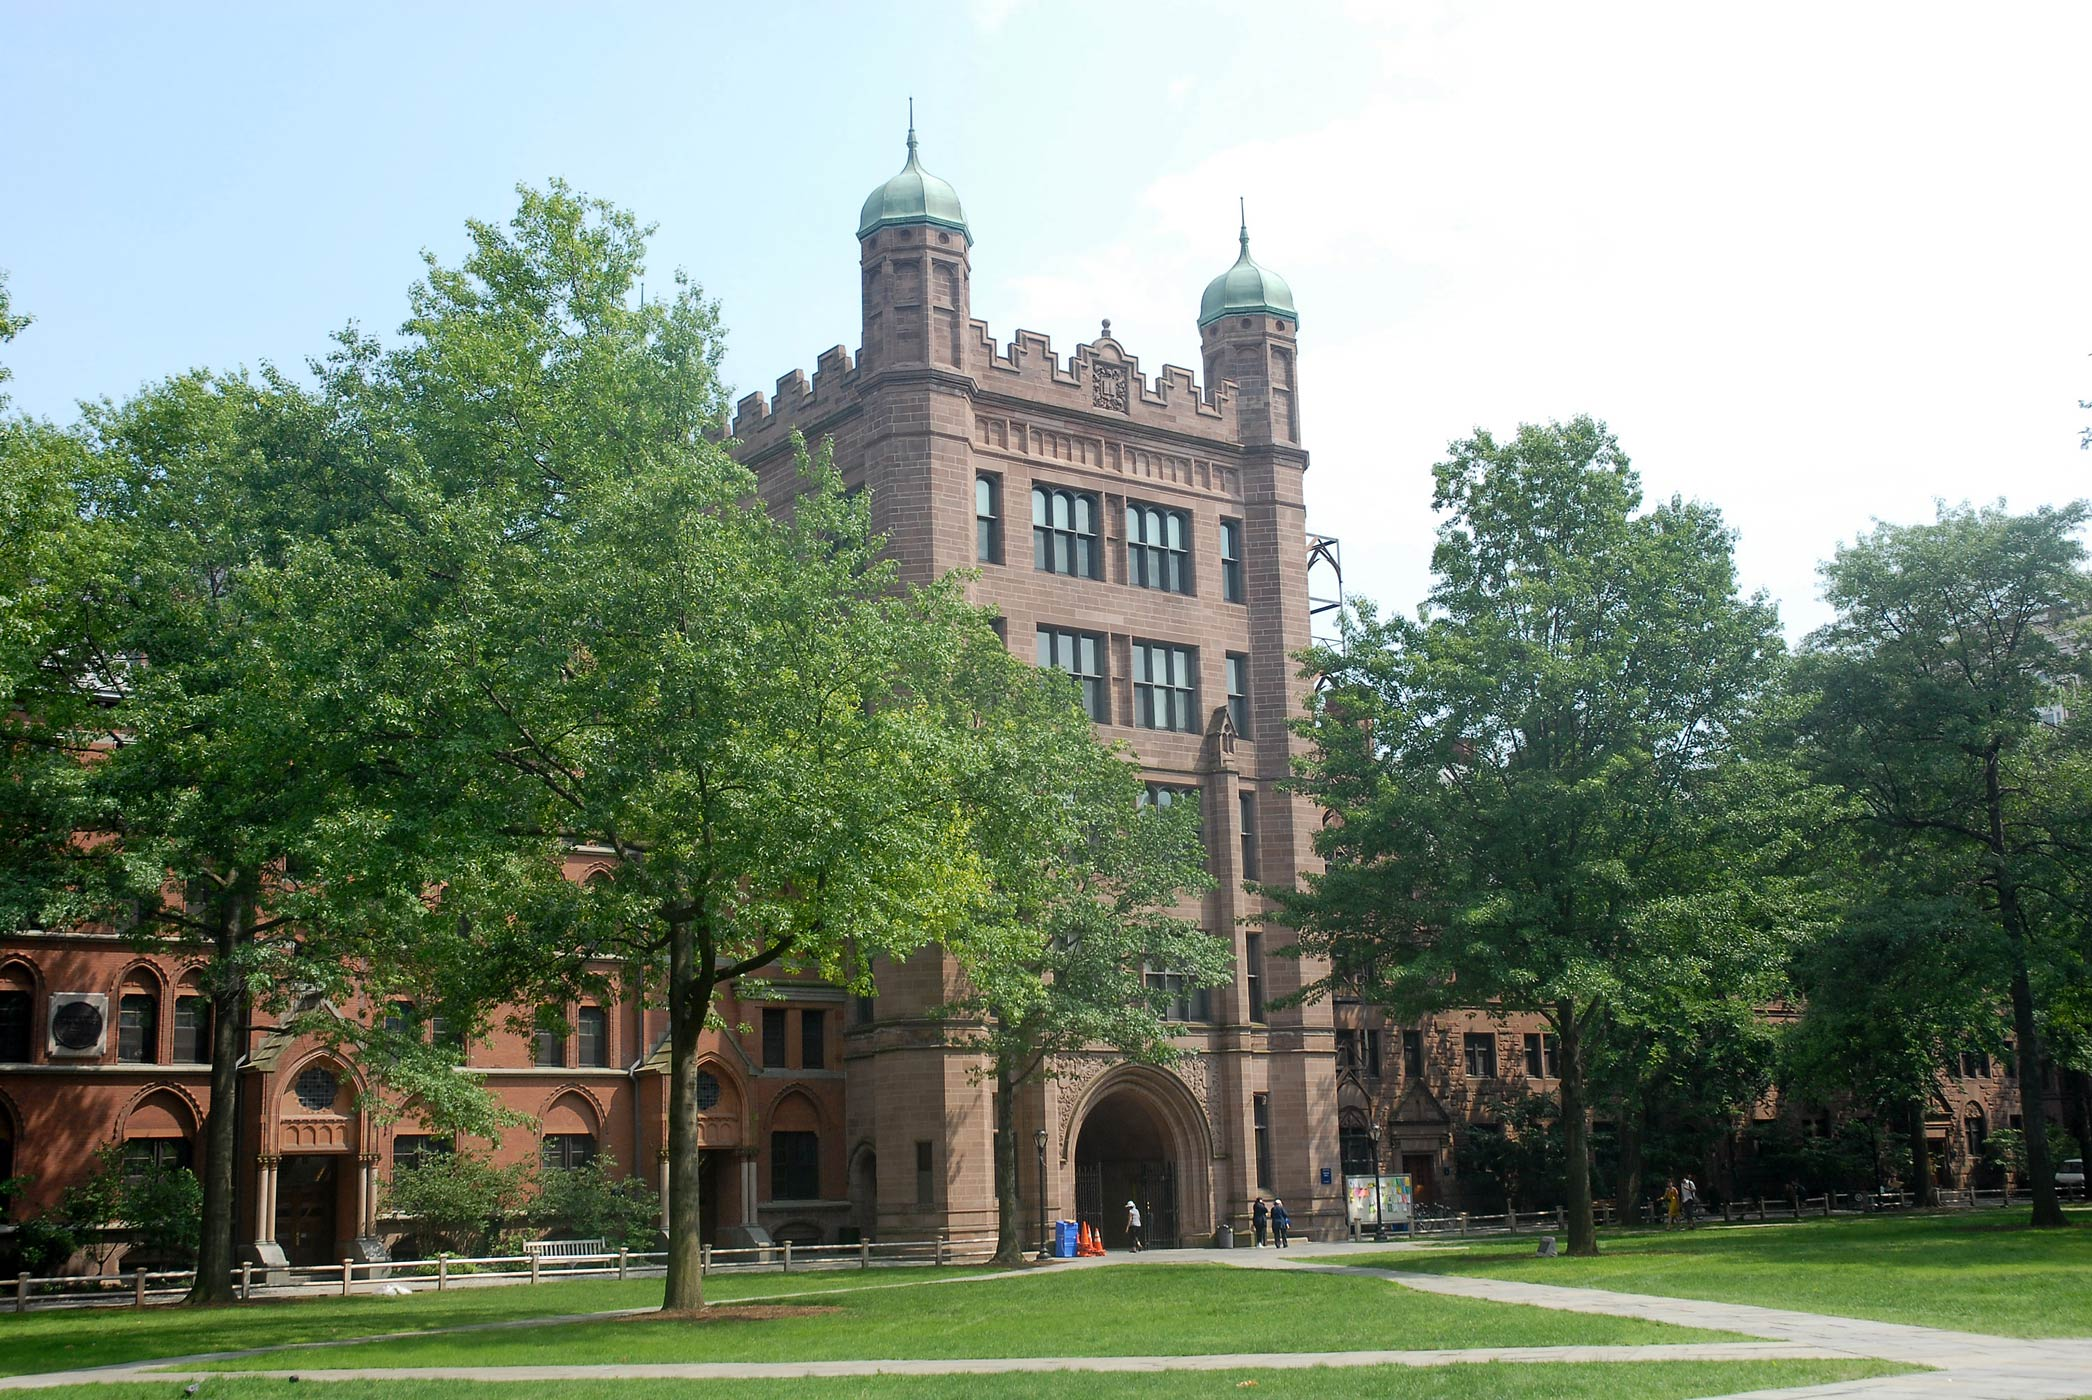 The Yale University campus is seen on June 28, 2007 in New Haven, Conn.